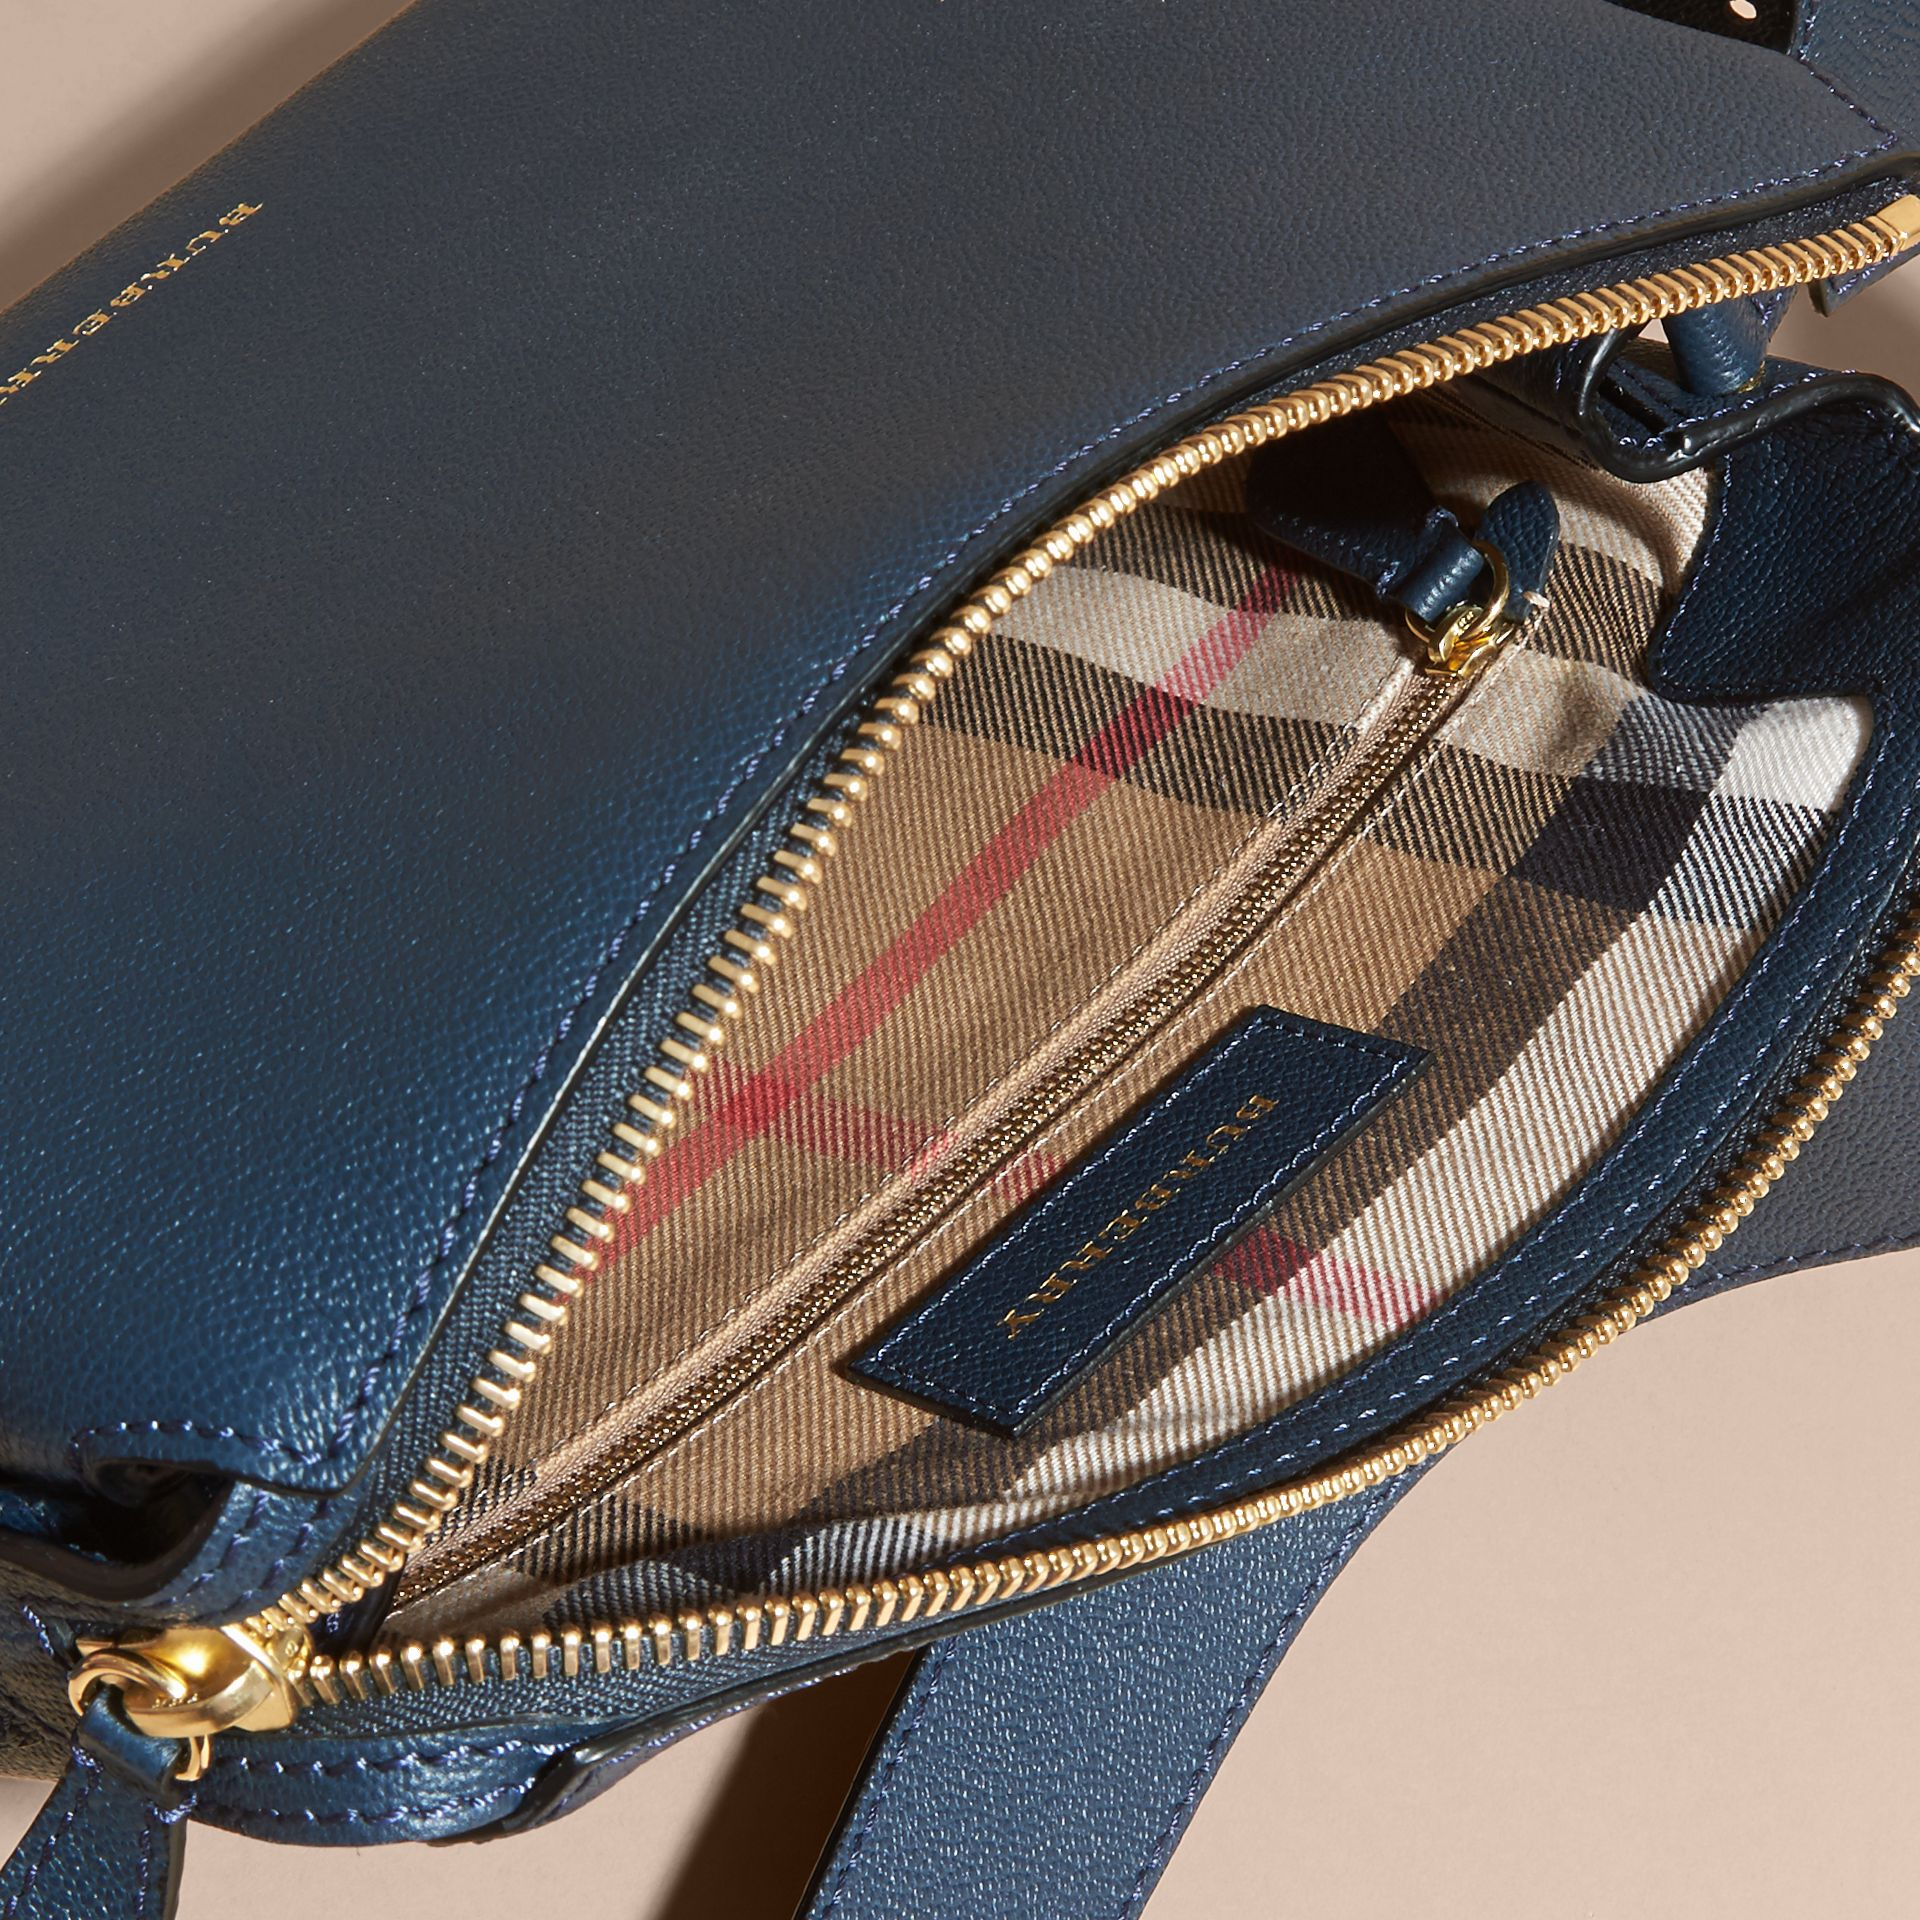 Buckle Detail Leather Crossbody Bag in Blue Carbon - gallery image 5